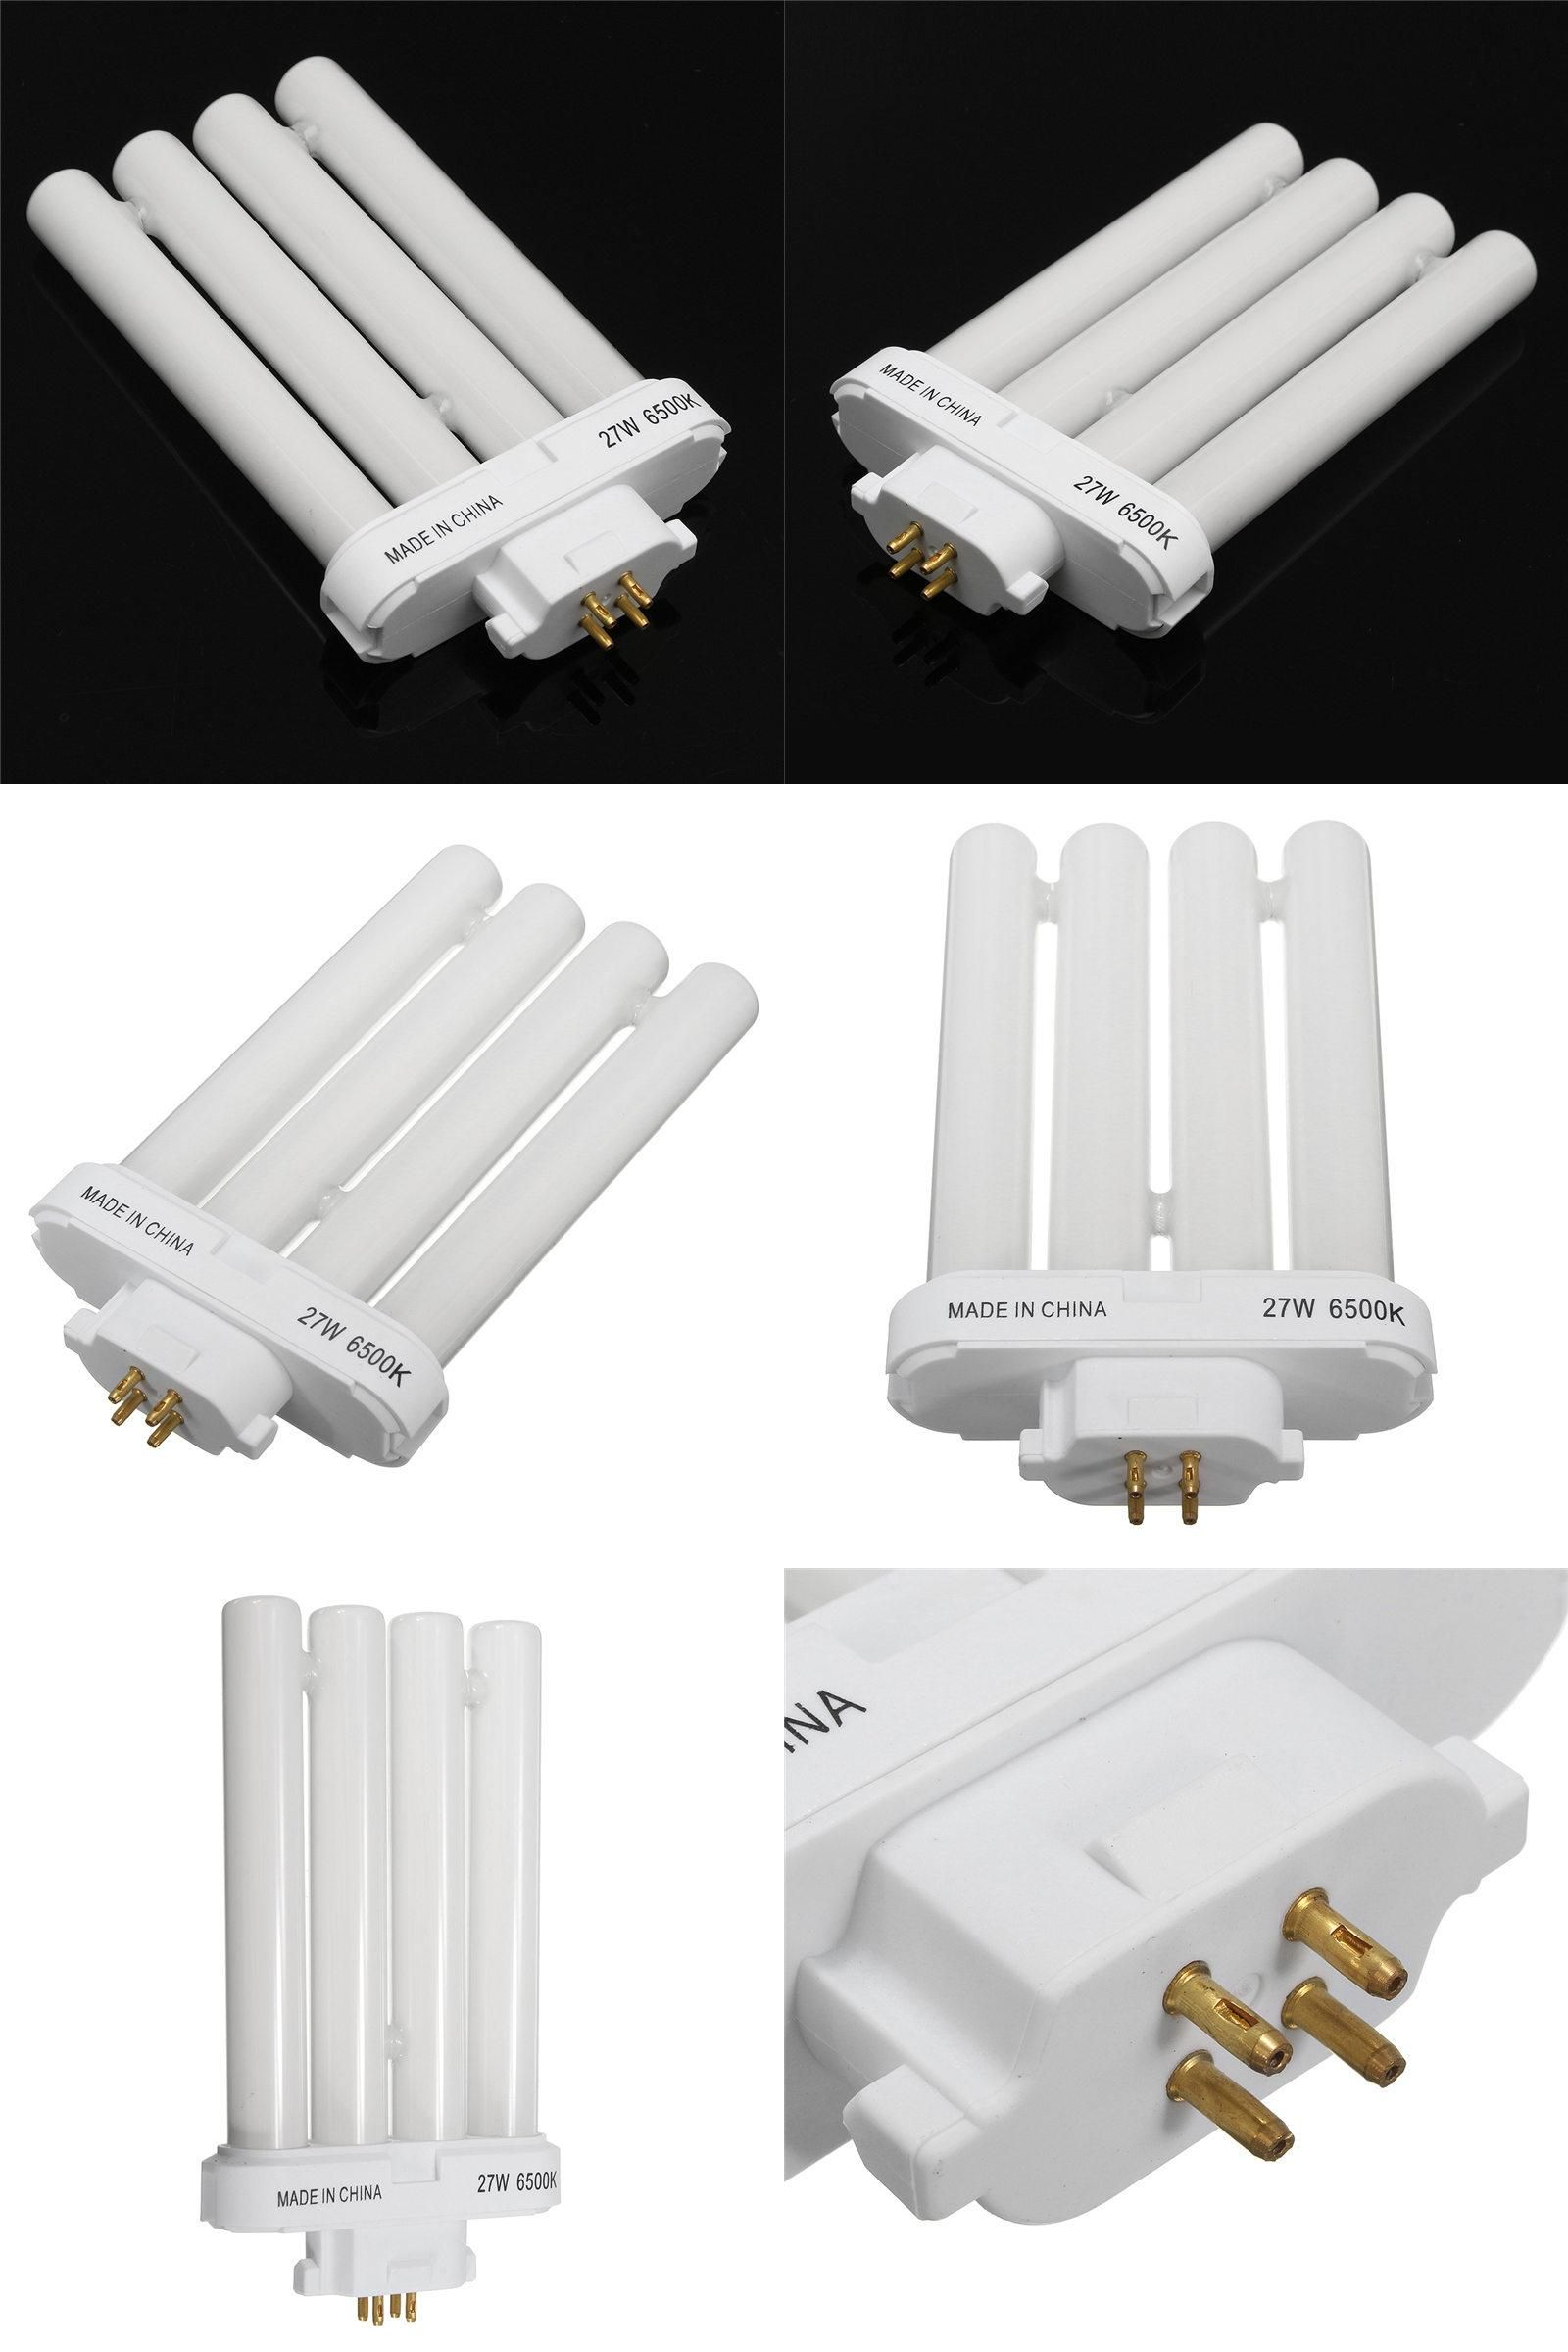 Visit to Buy] 4 Rows Light Bulb 27W 6500K 4-Pin Tube Compact ...